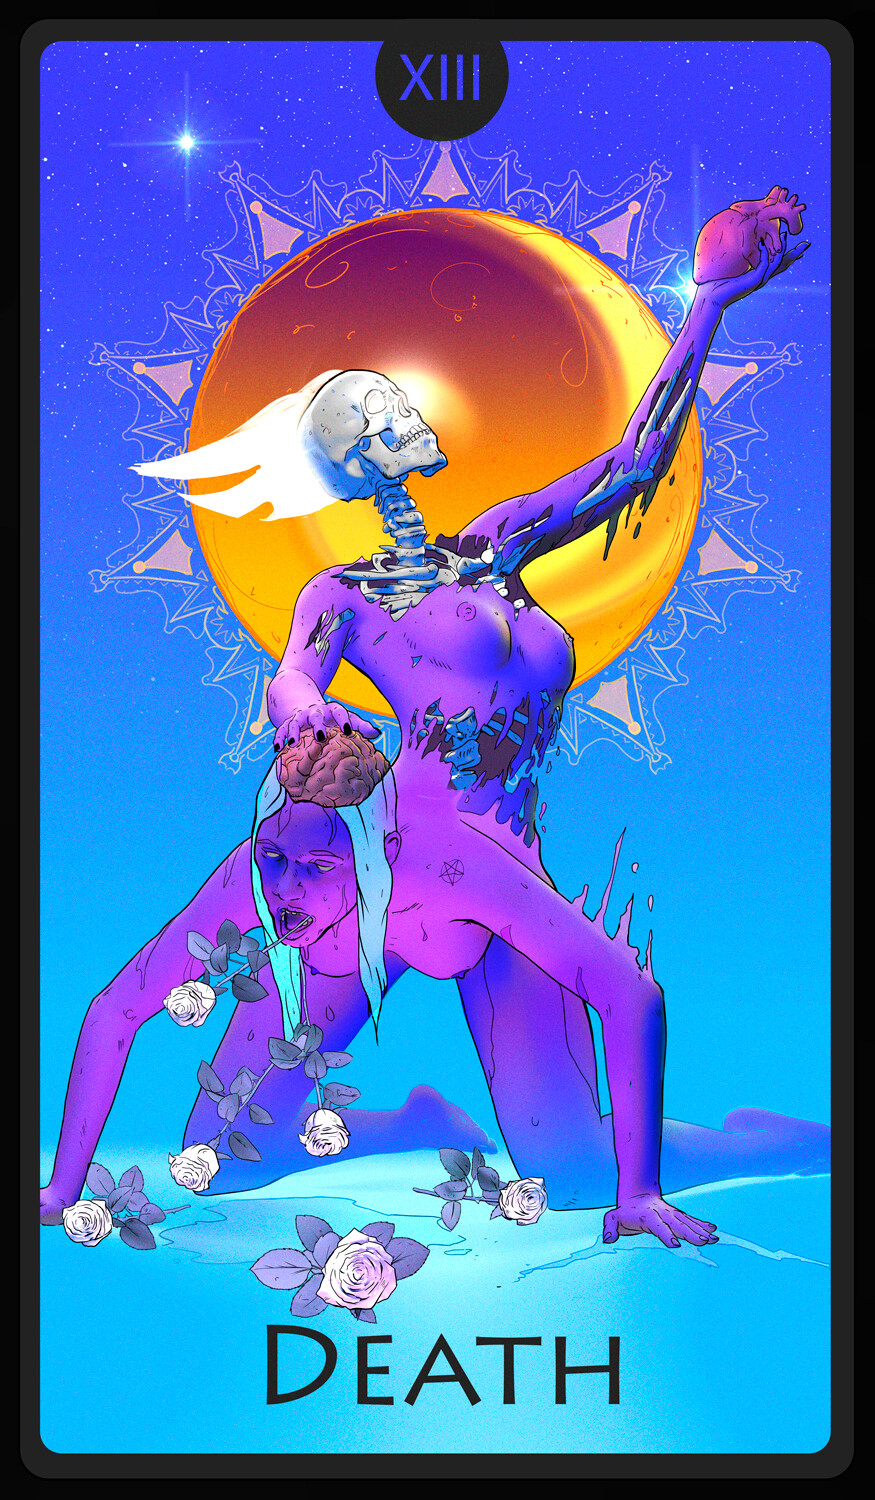 The Death Tarot Card Design